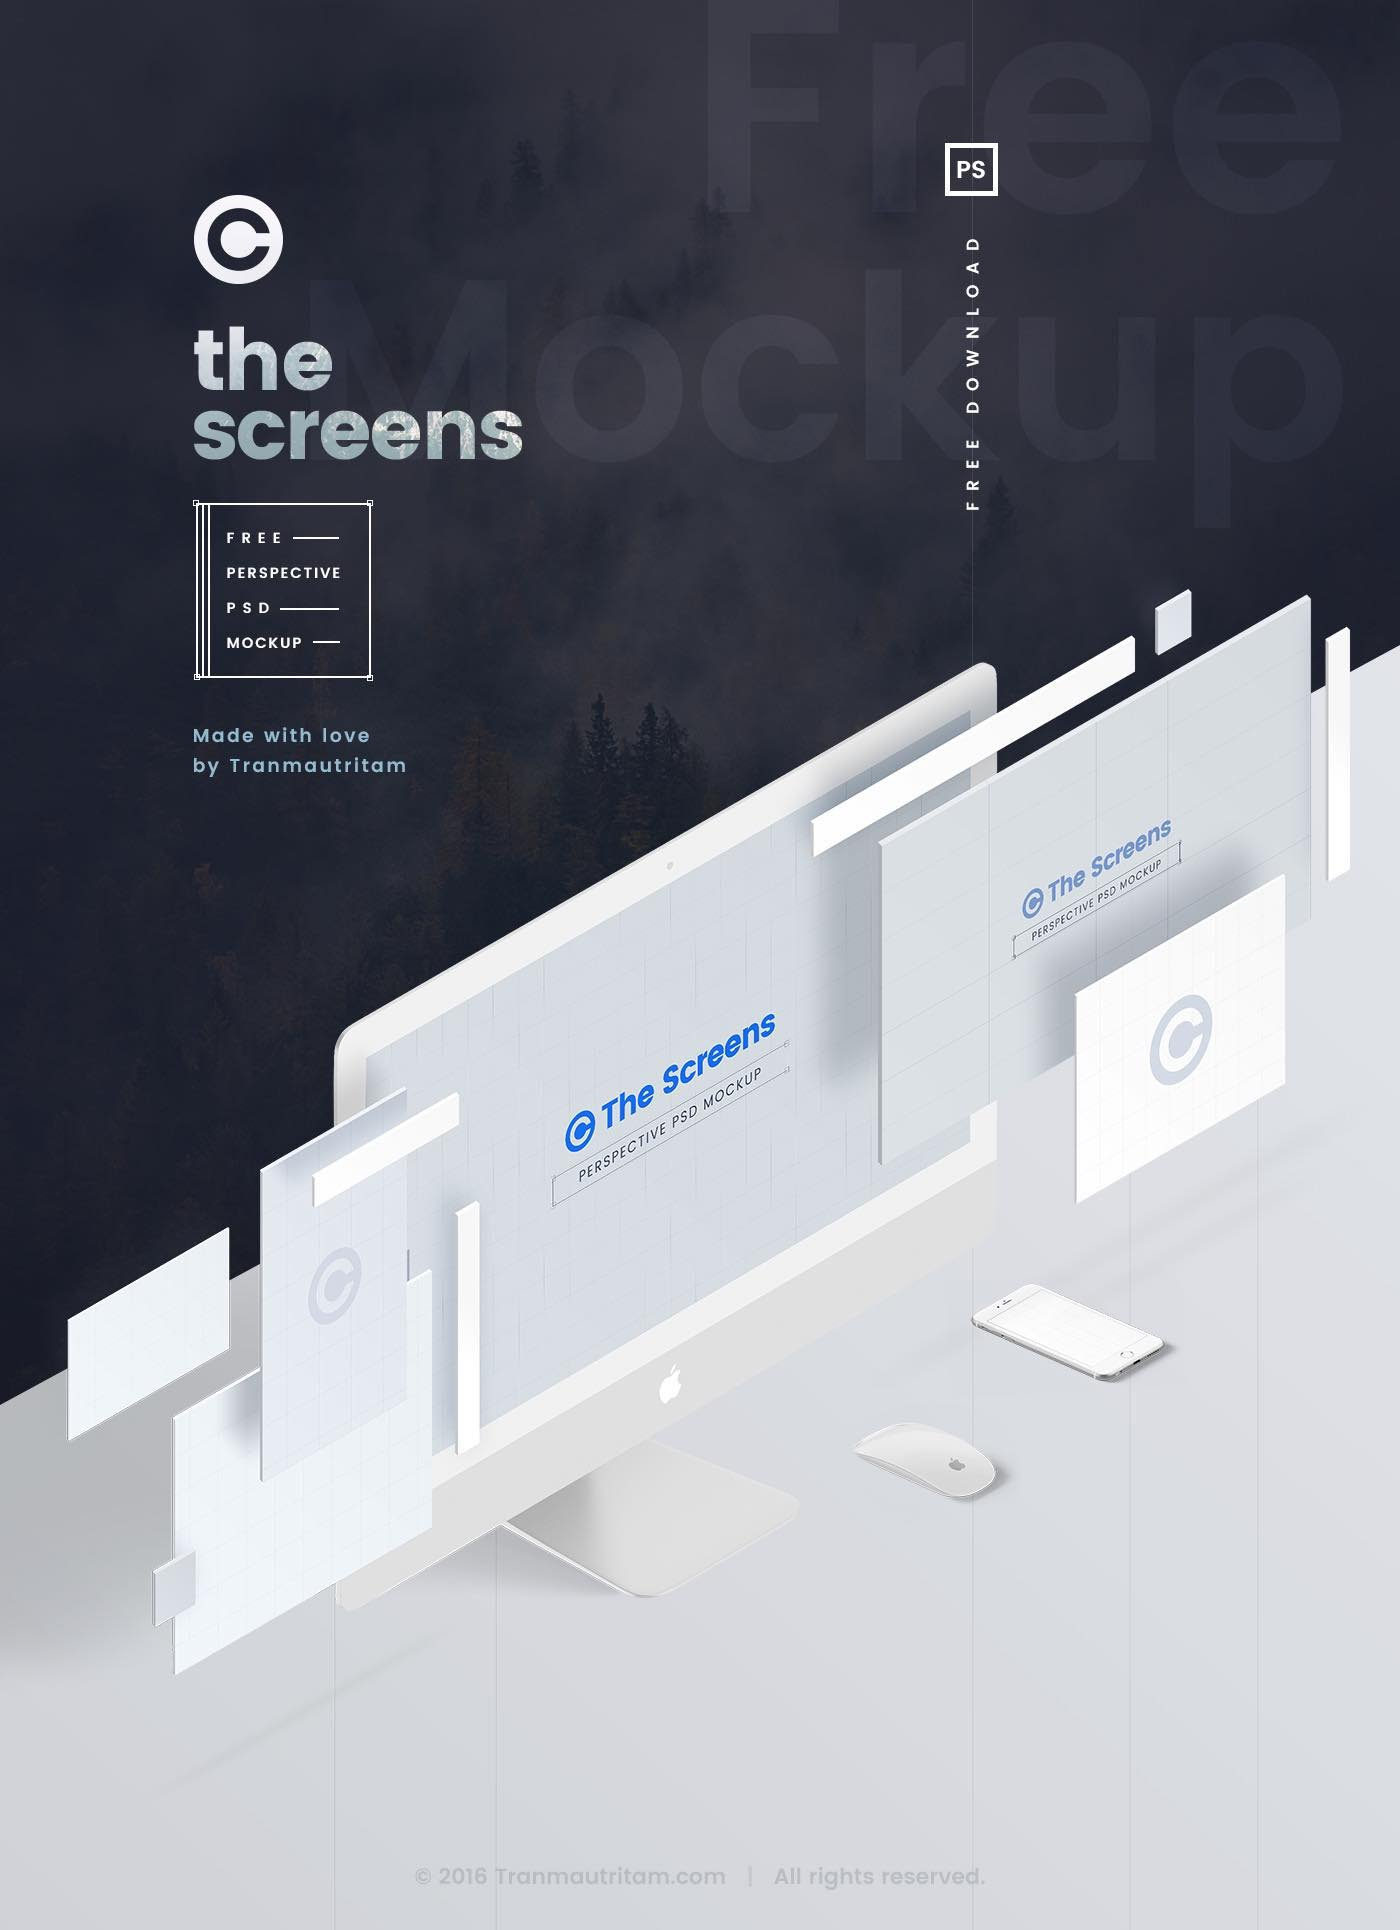 The Sceens - Perspective PSD Mockup